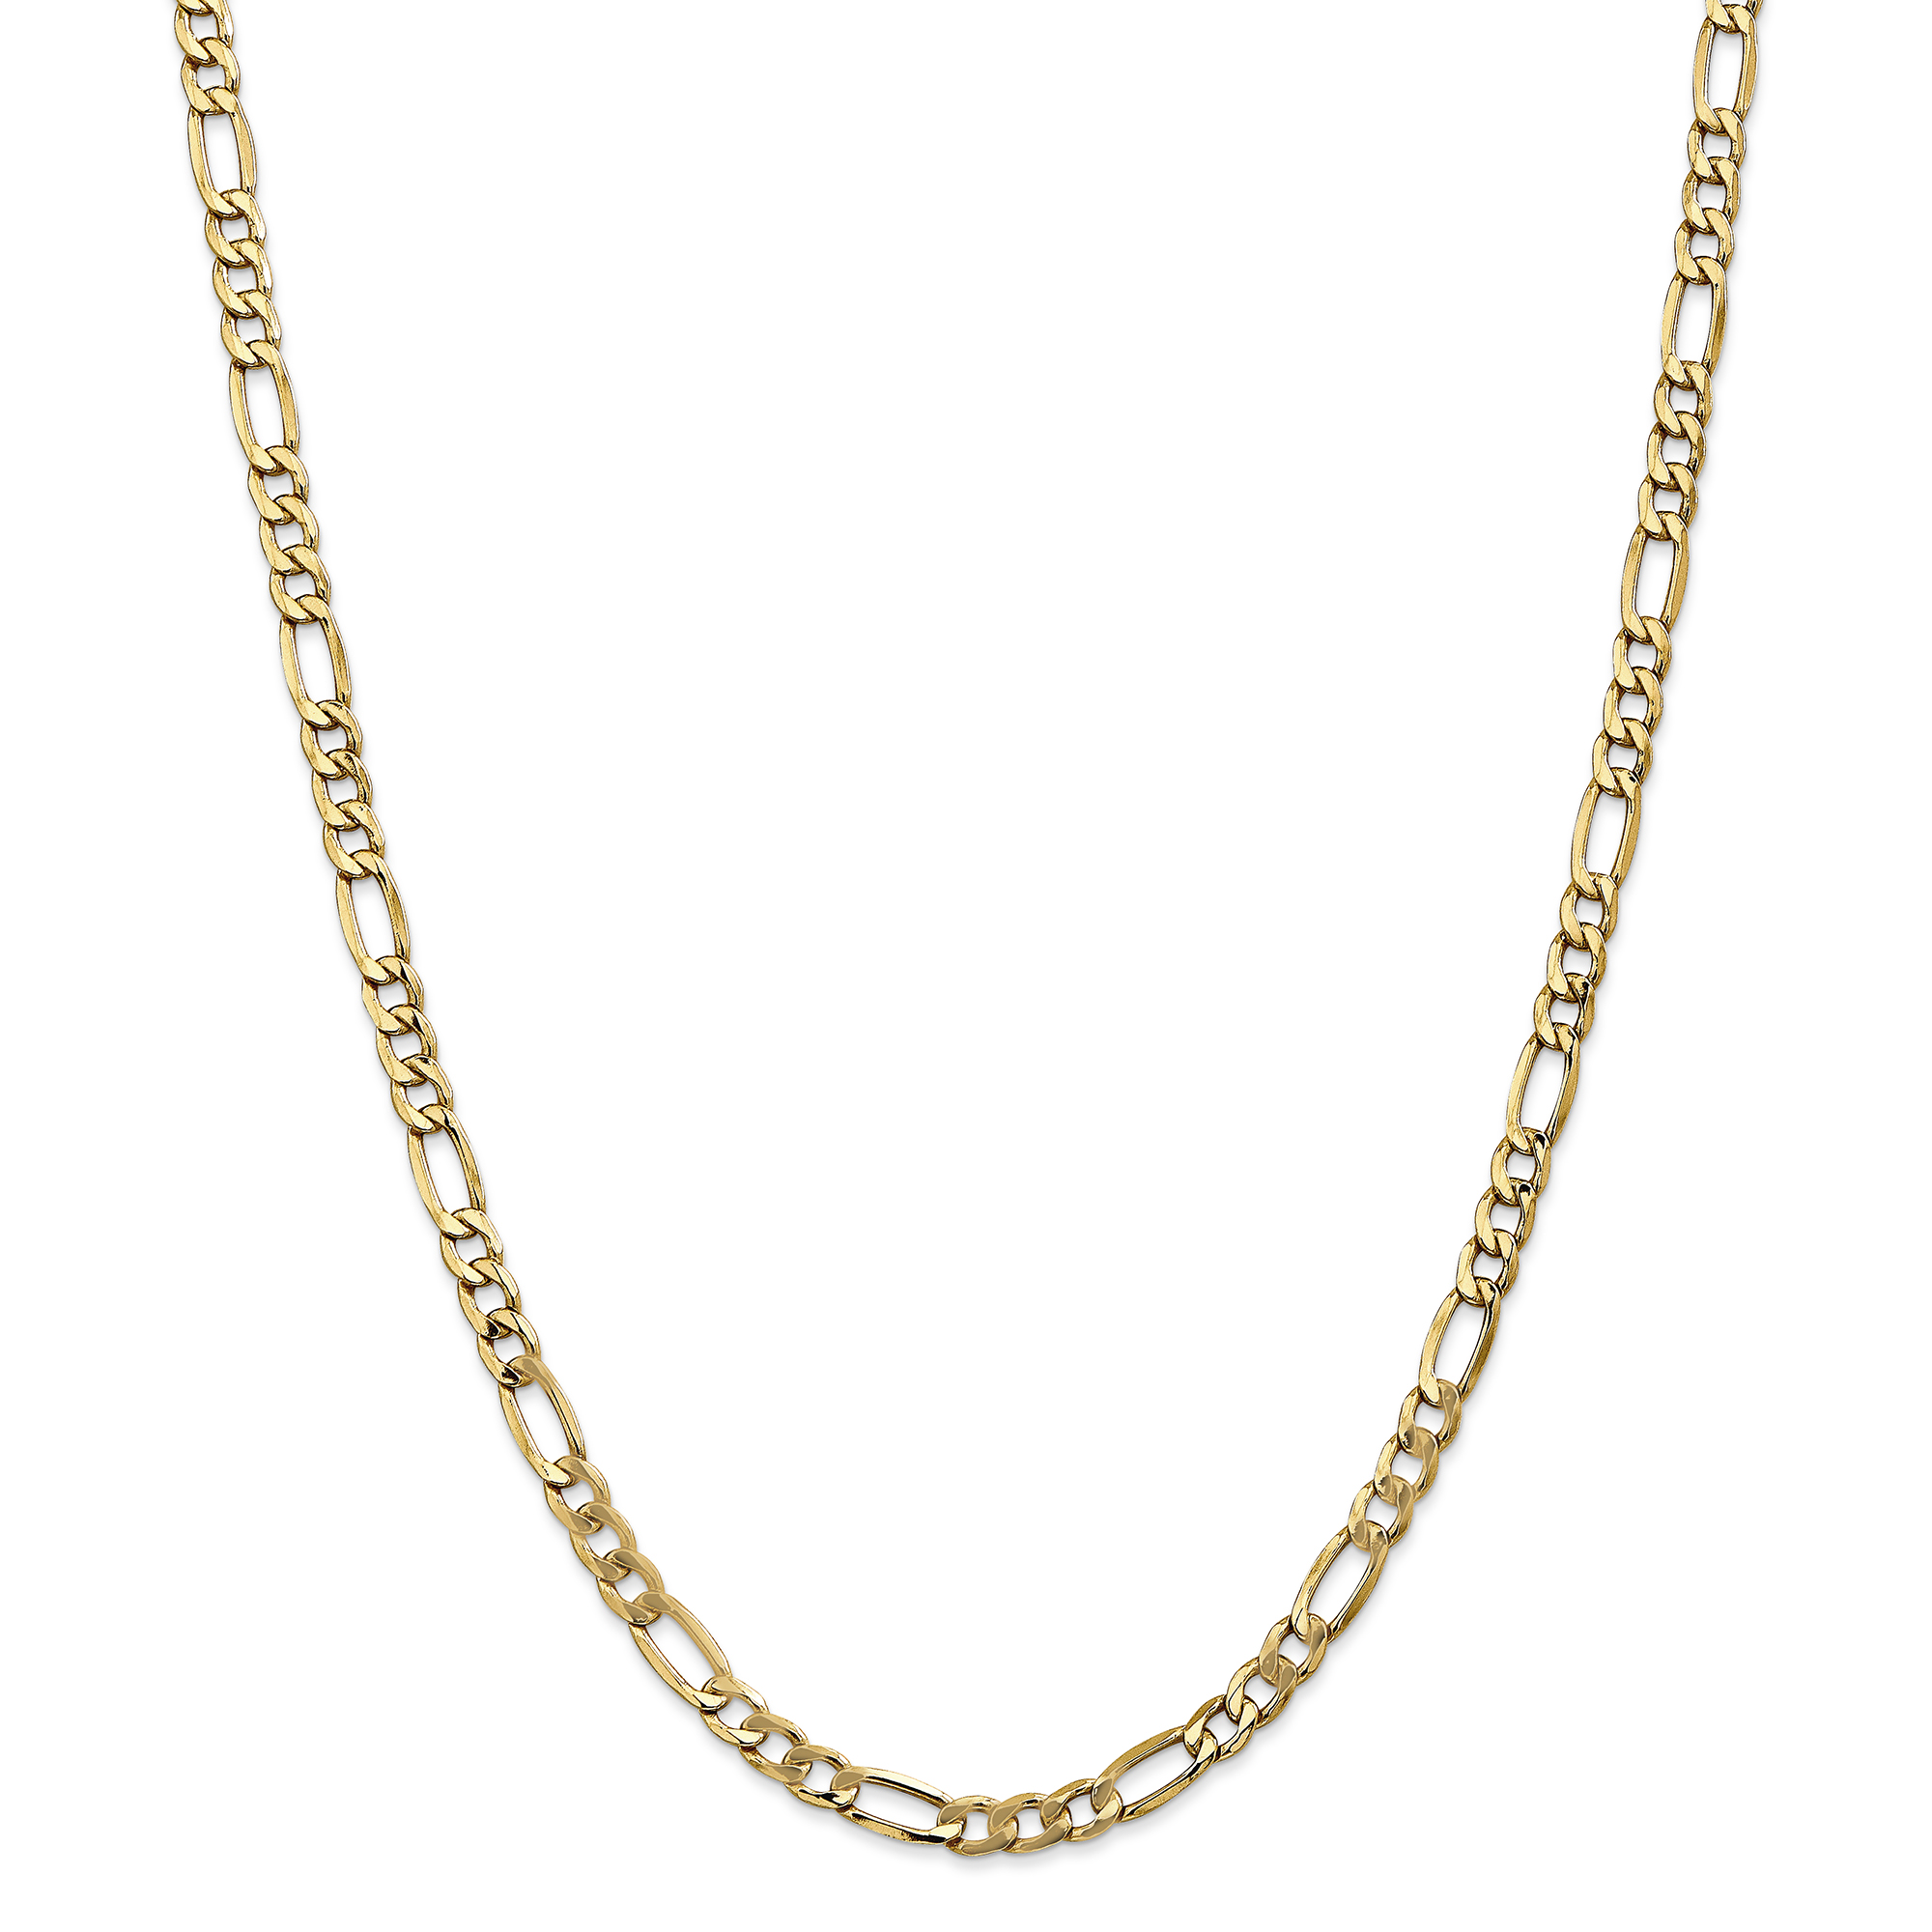 Roy Rose Jewelry 14K Yellow Gold 5.35mm Semi-Solid Figaro Chain Necklace ~ Length 16'' inches by